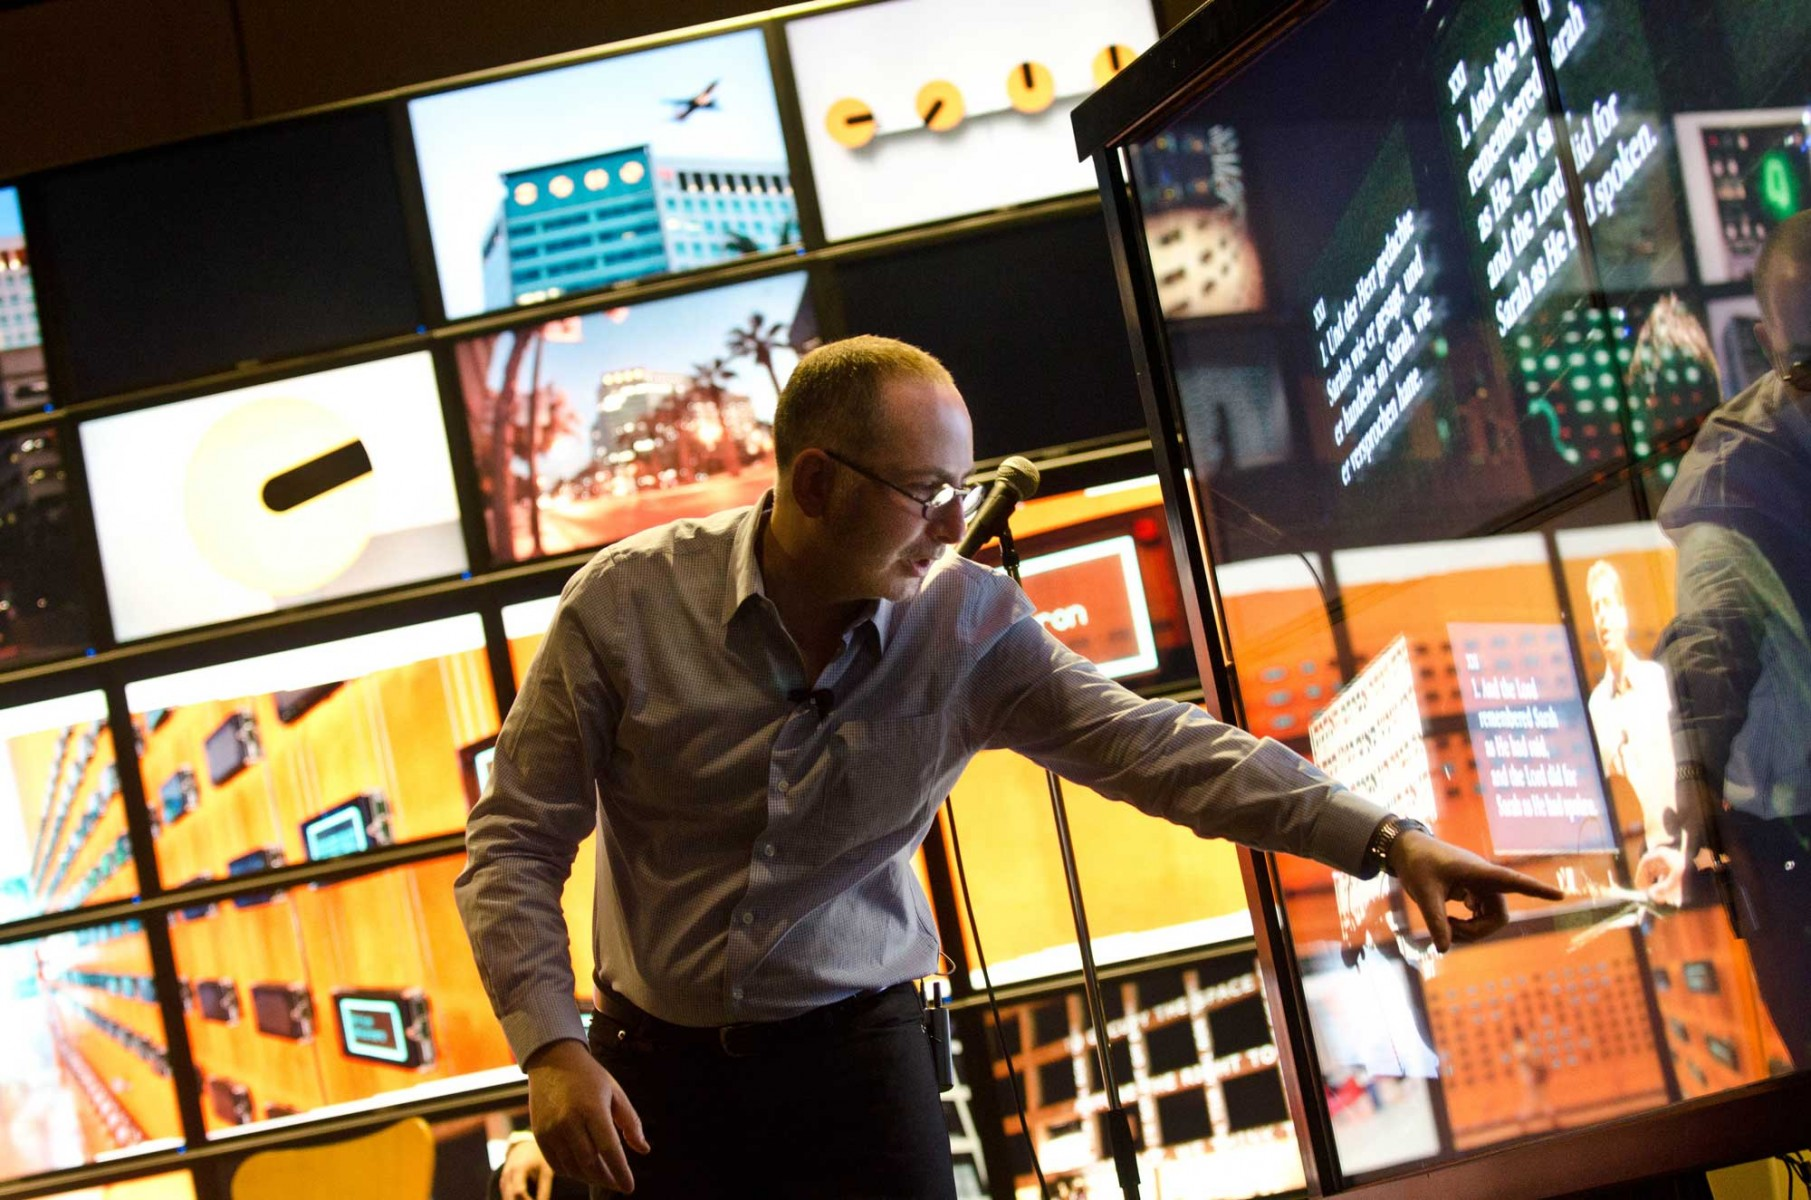 A man pointing in front of digital screens